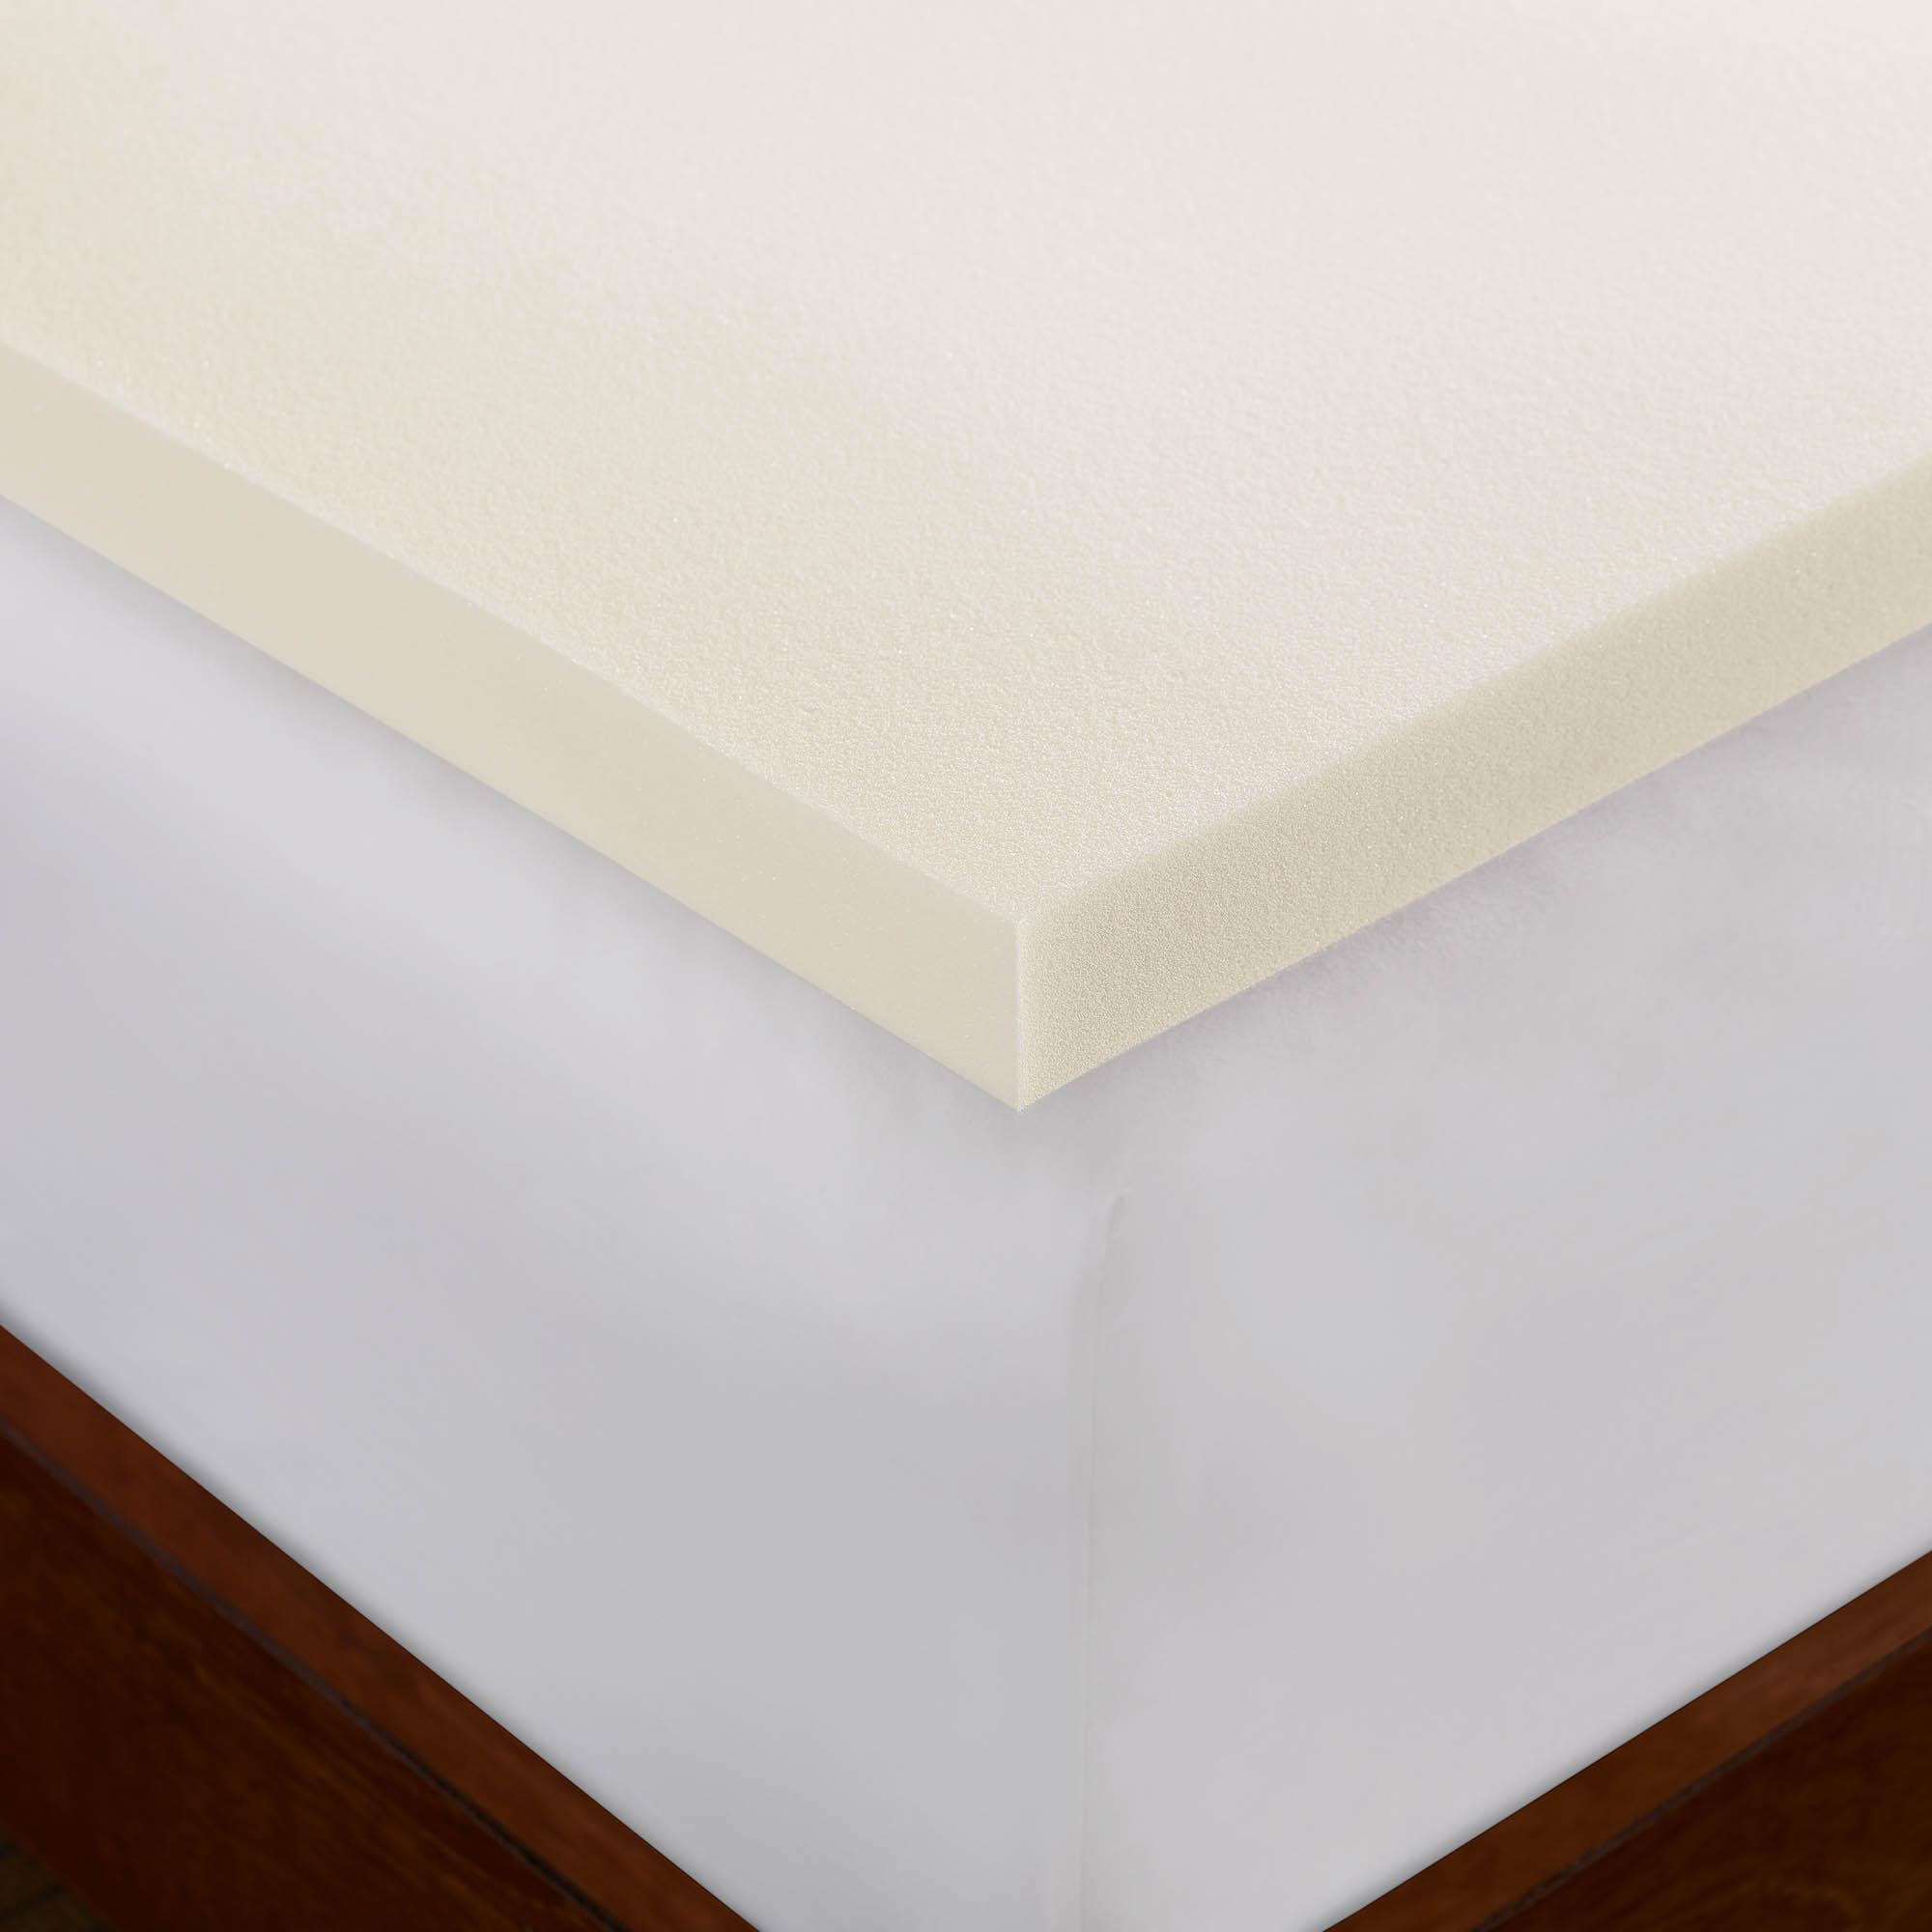 Sleep innovations 2 inch memory foam mattress topper made in the usa with a 1 year Memory foam mattress topper twin